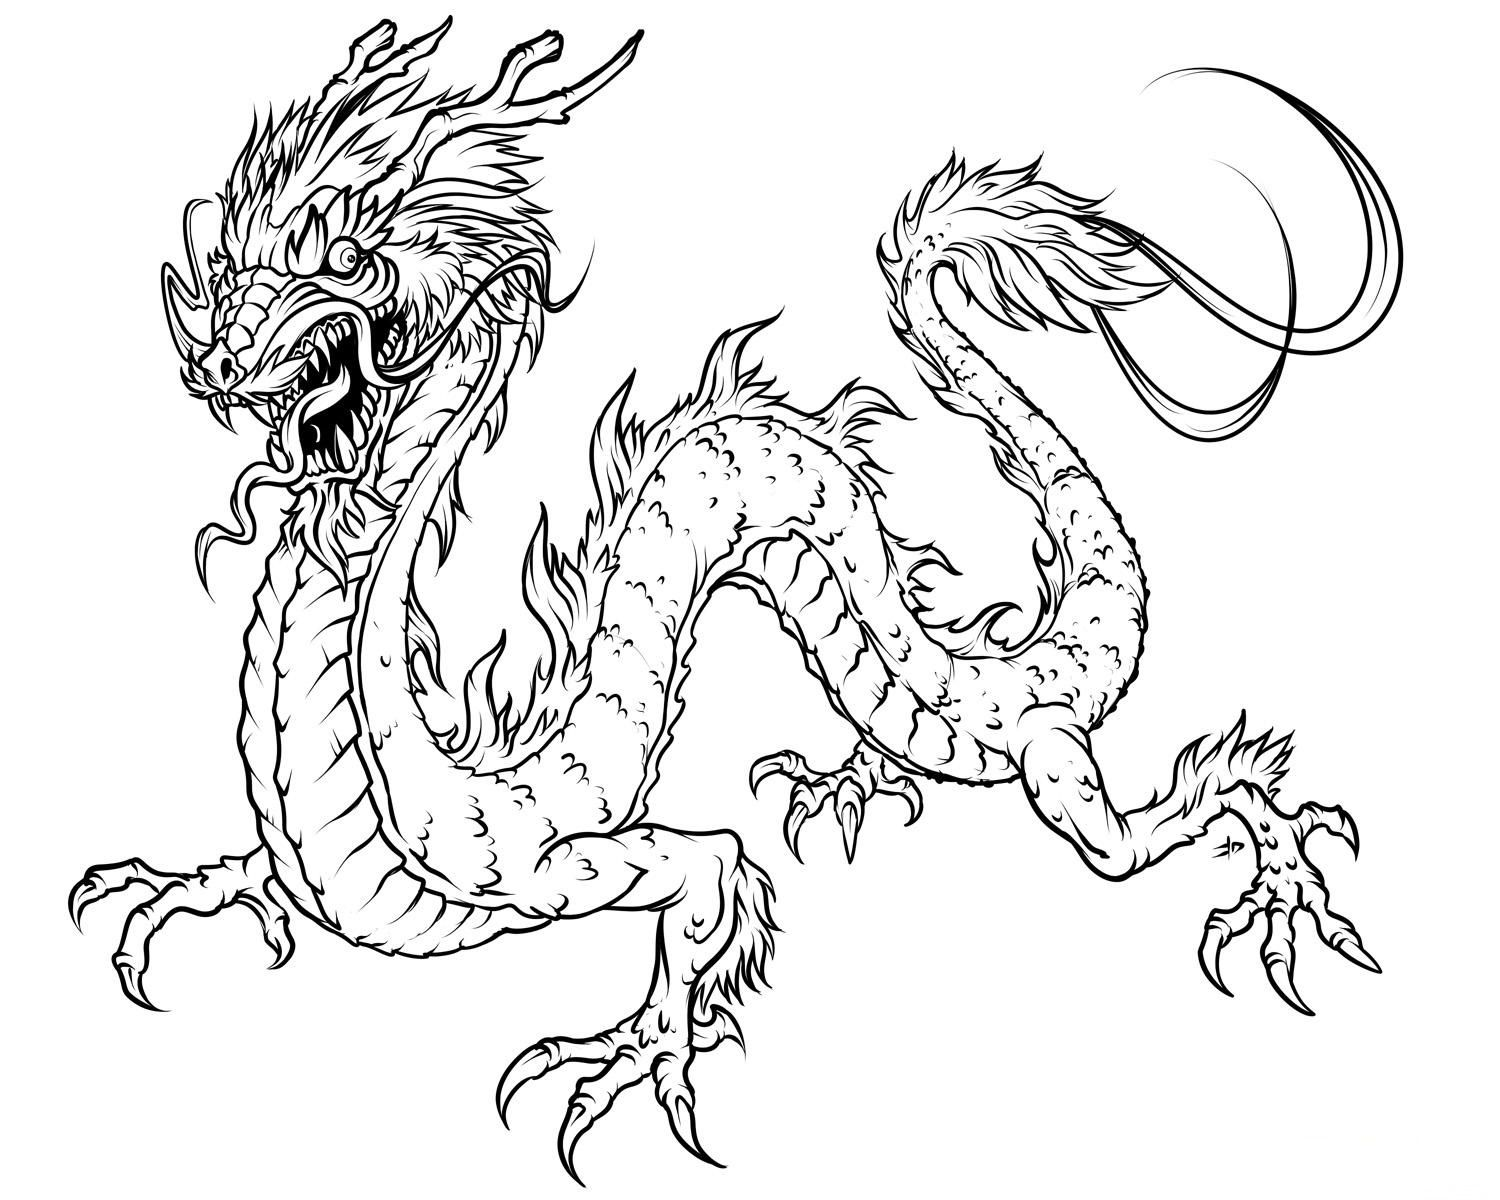 Drachen Ausmalbilder Kostenlos Ausdrucken : Fanacy Printable Coloring Pages For Adults Free Printable Dragon